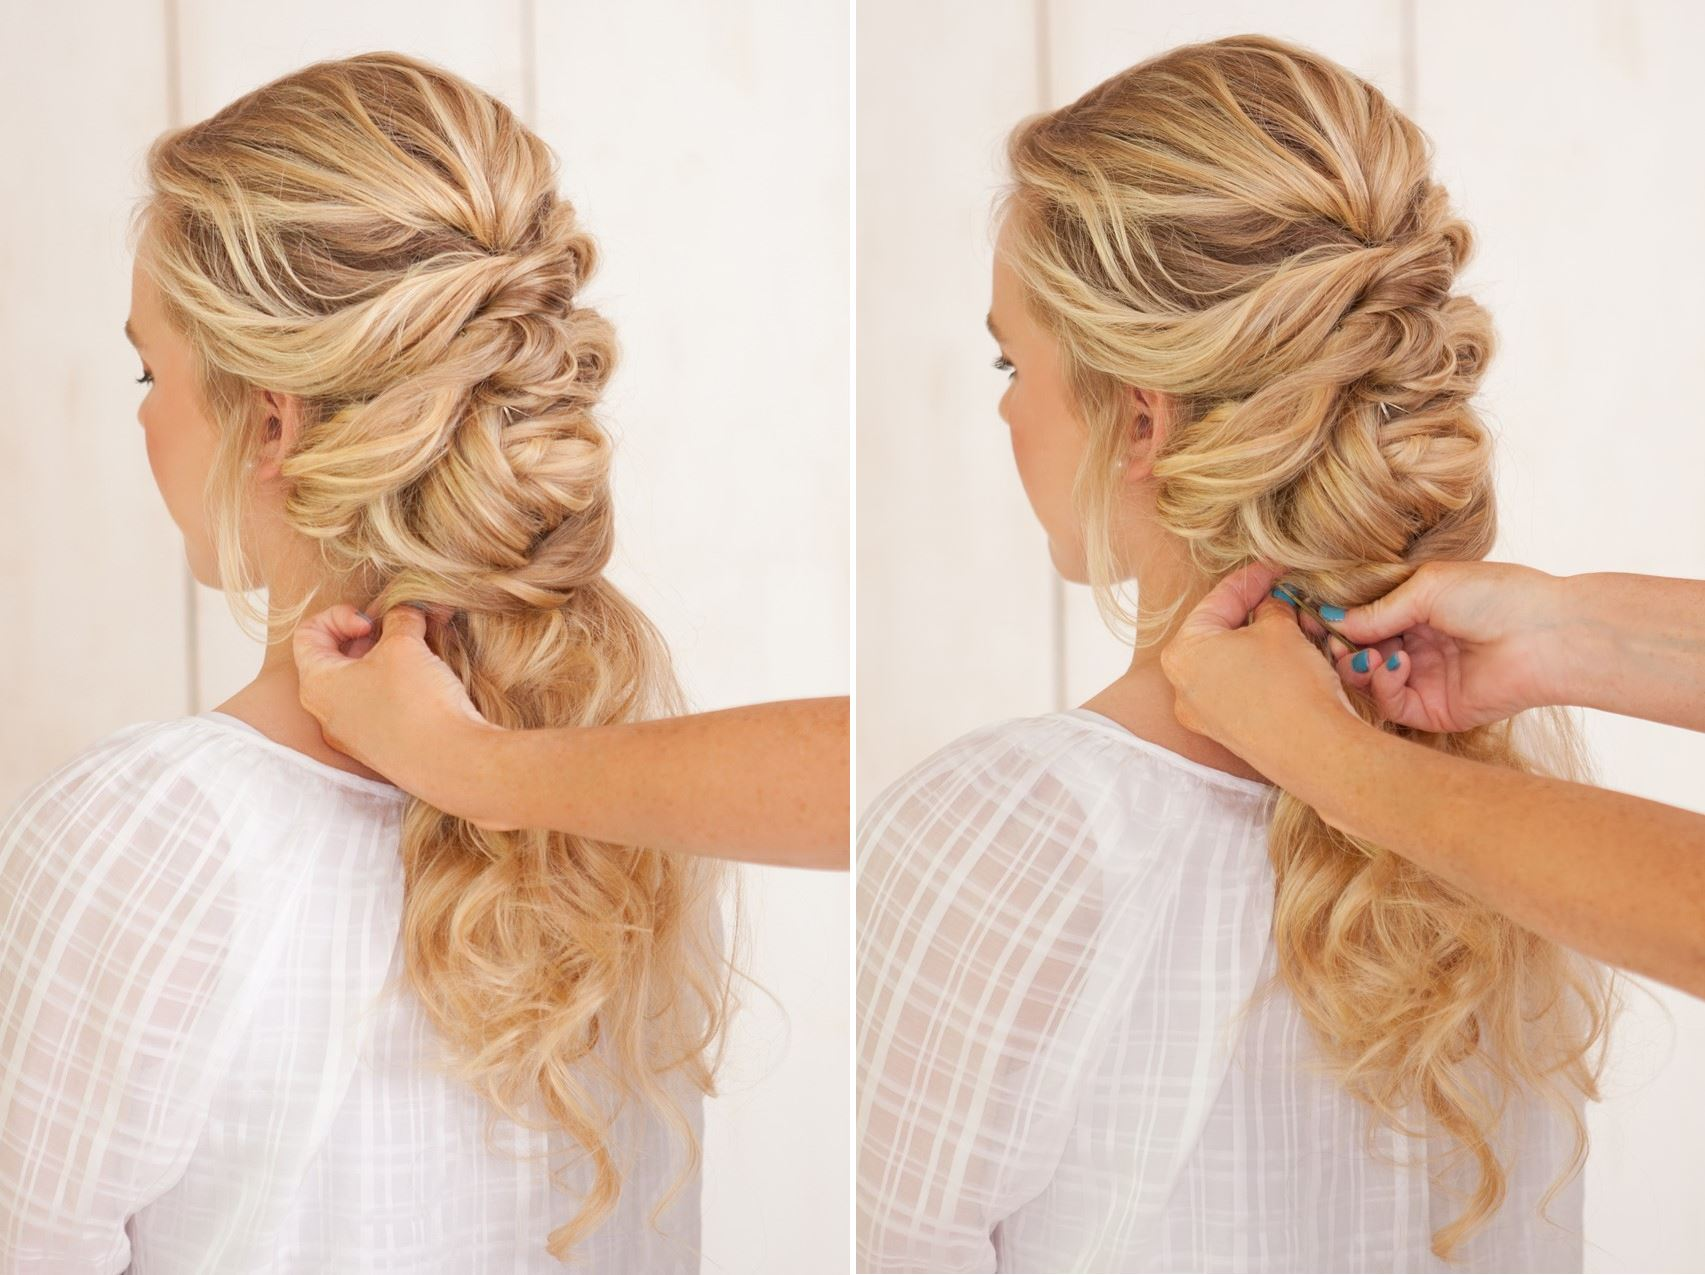 DIY Fancy Twisted French Braid Bridal Updo